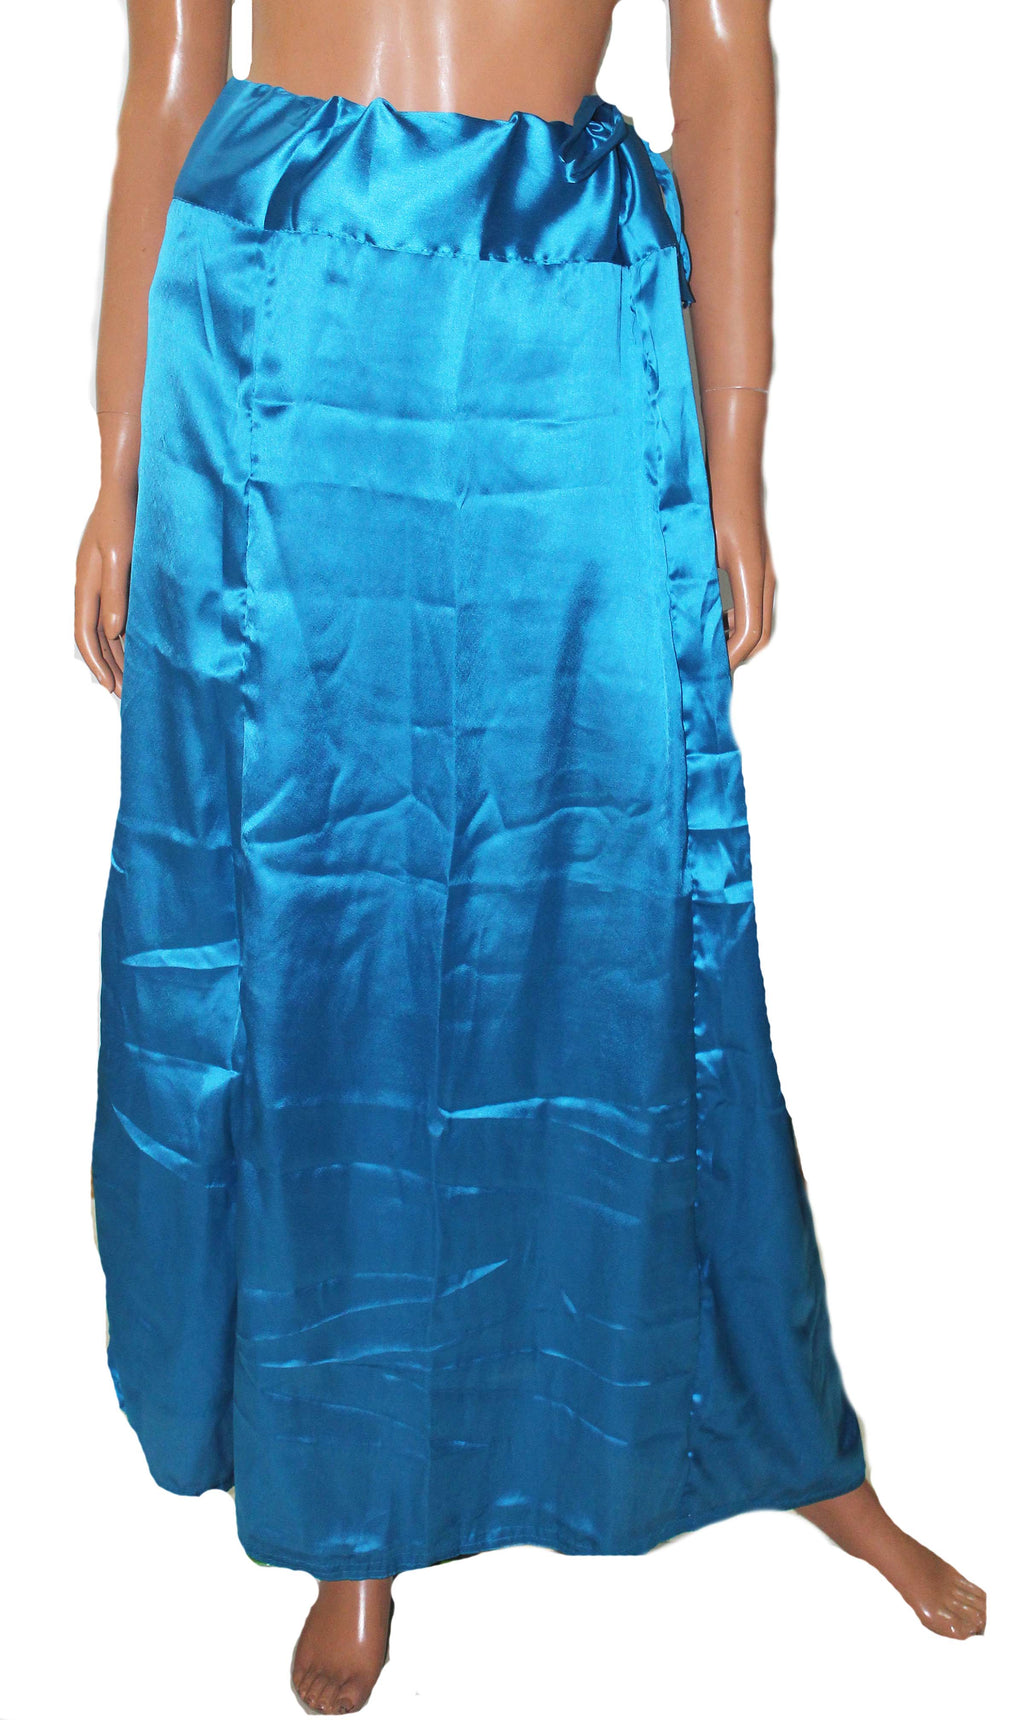 Blue Luxurious soft satin skirt saree Petticoat Underskirt Imported Material